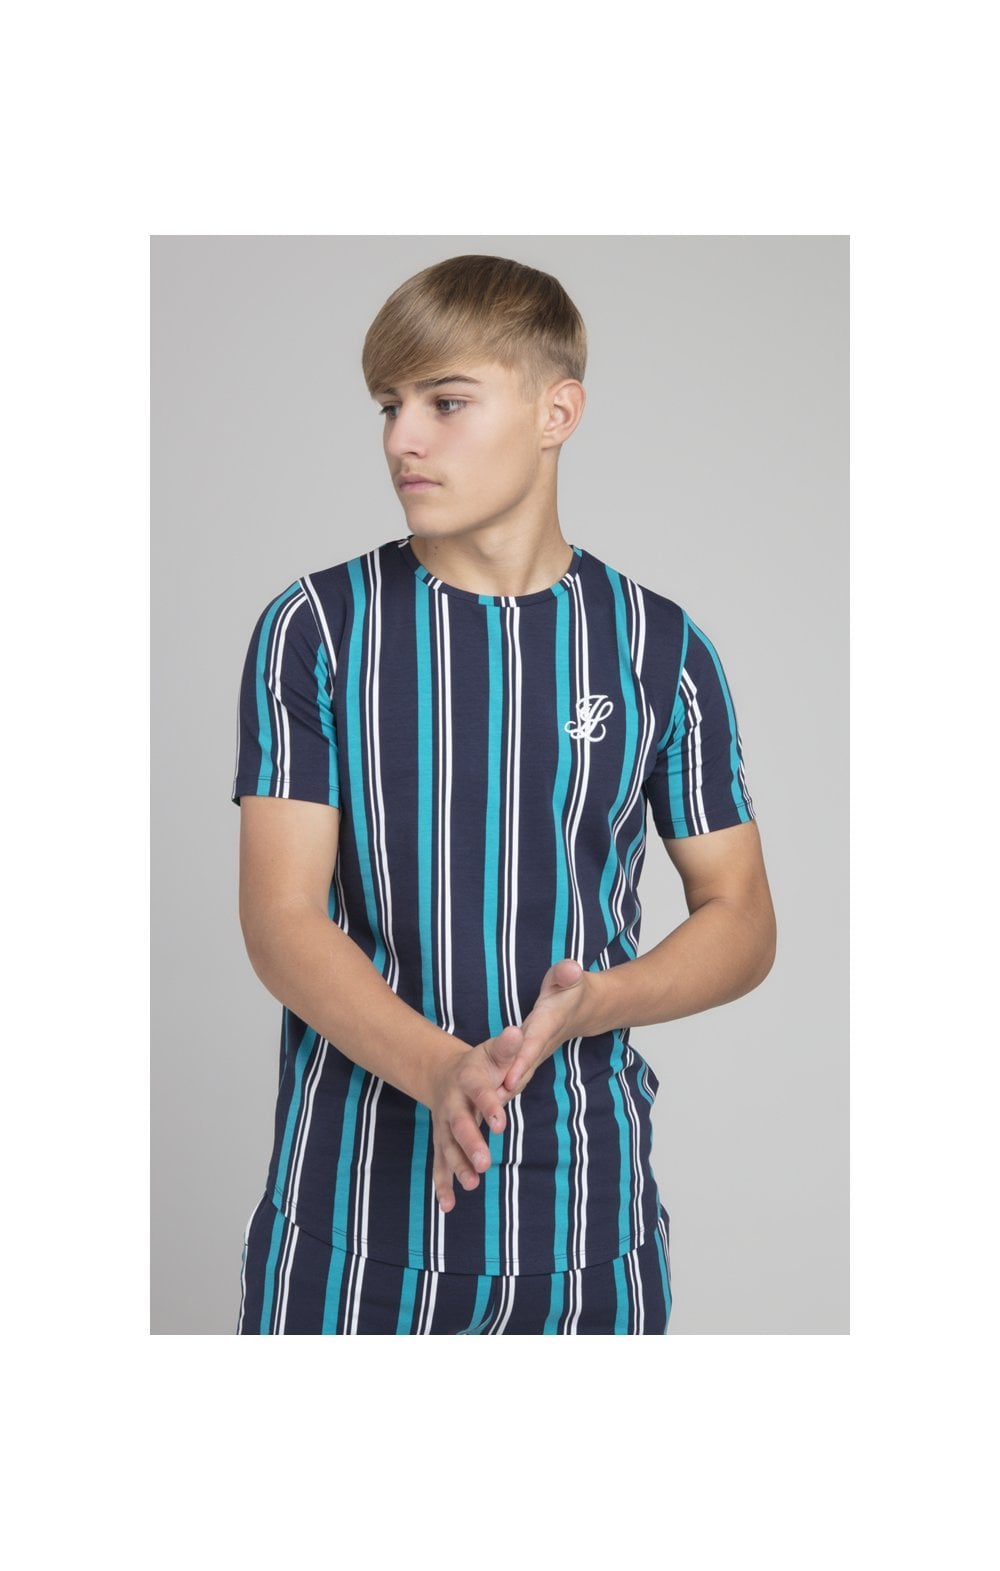 Illusive London Stripe Tee - Navy & Teal